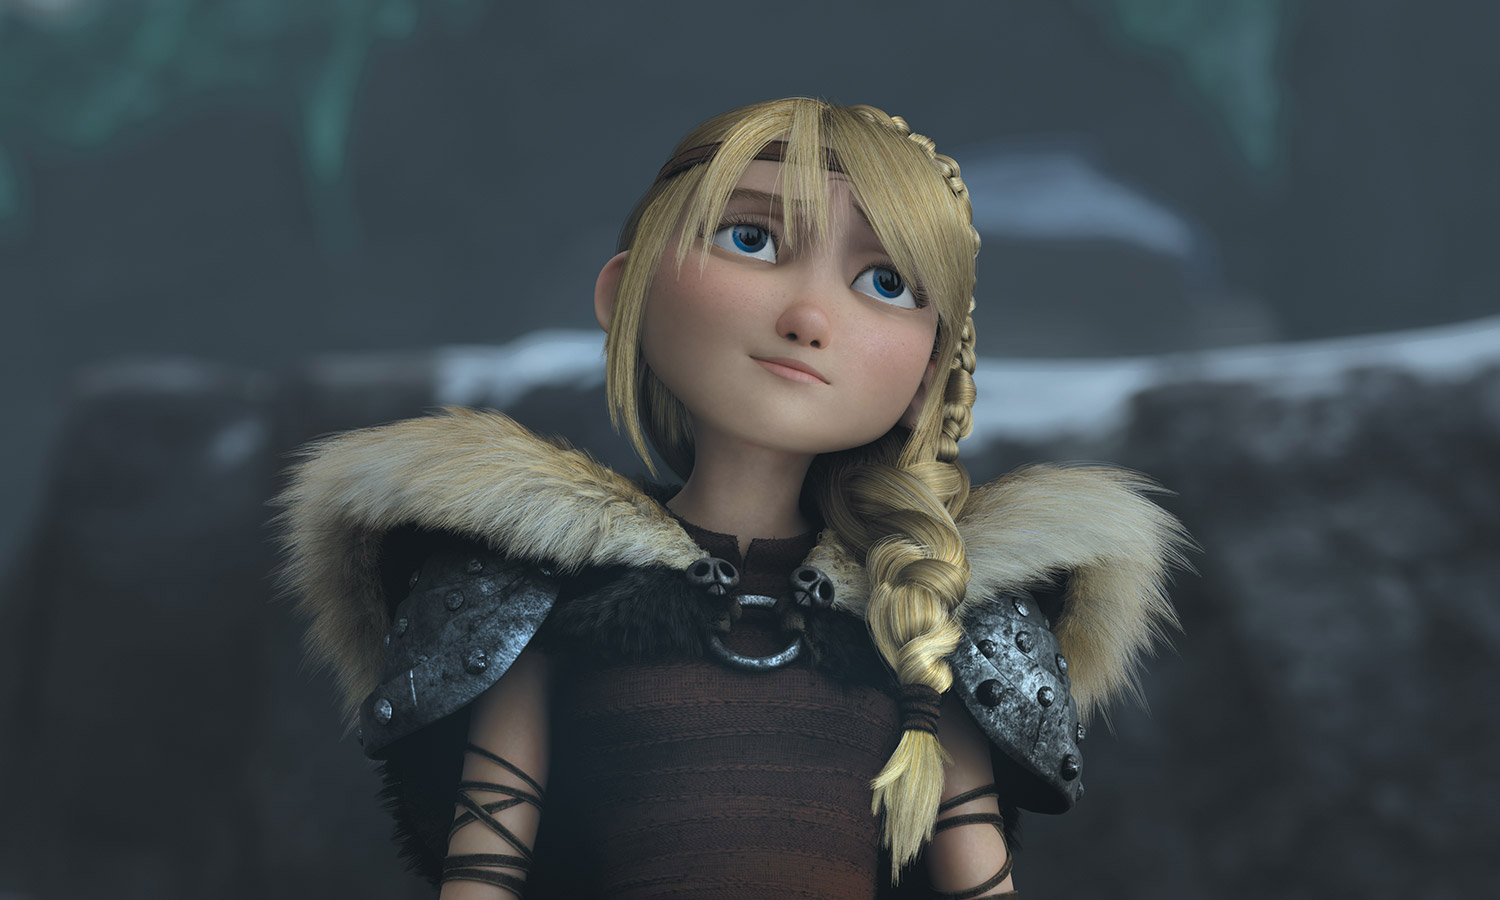 Astrid in dragon 2: her hair is much finer and there's minute detail in how the fur on her shoulders and her hair is rendered digitally